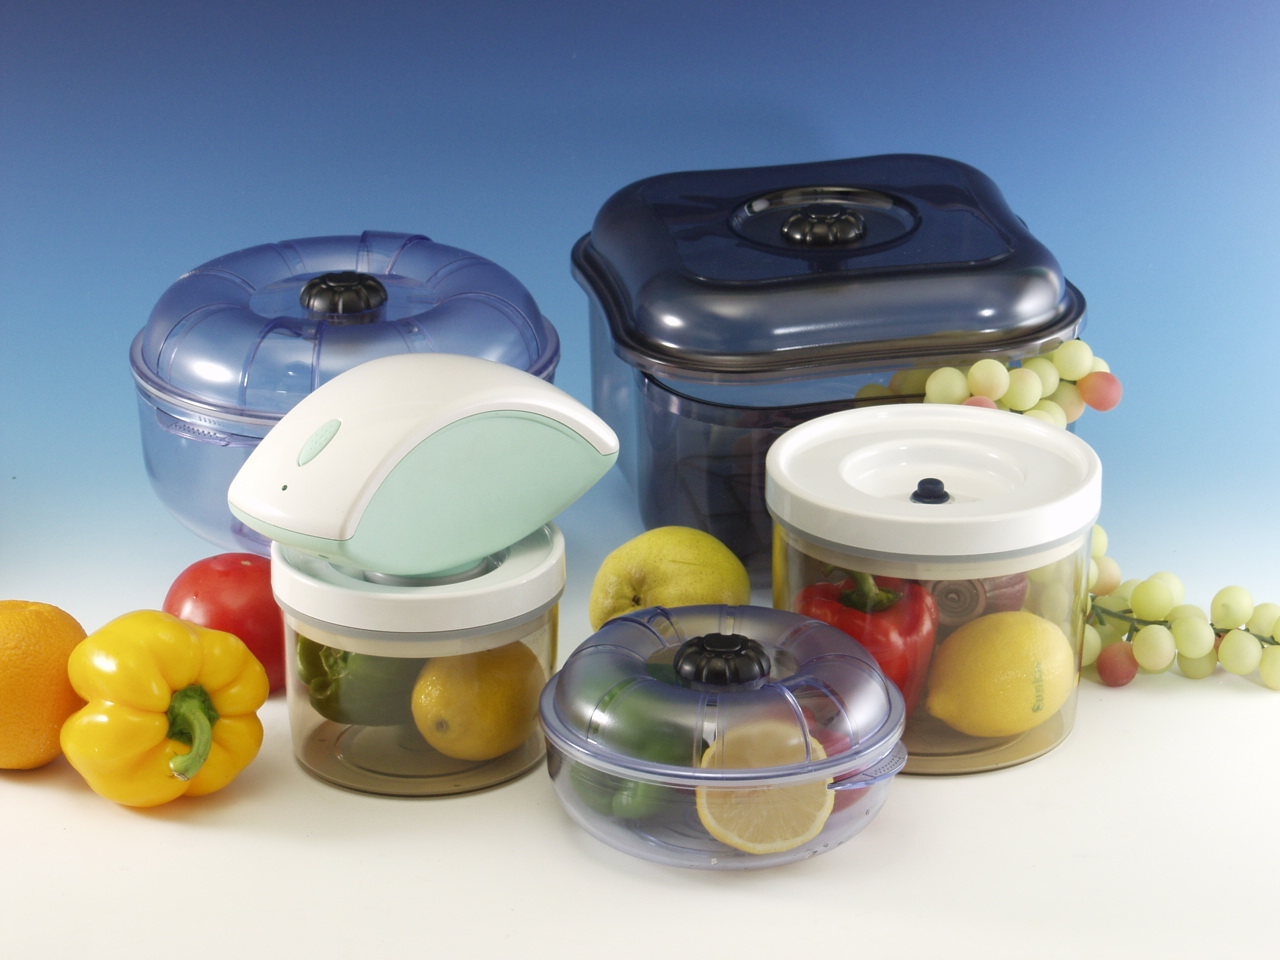 vacuum sealer and canister